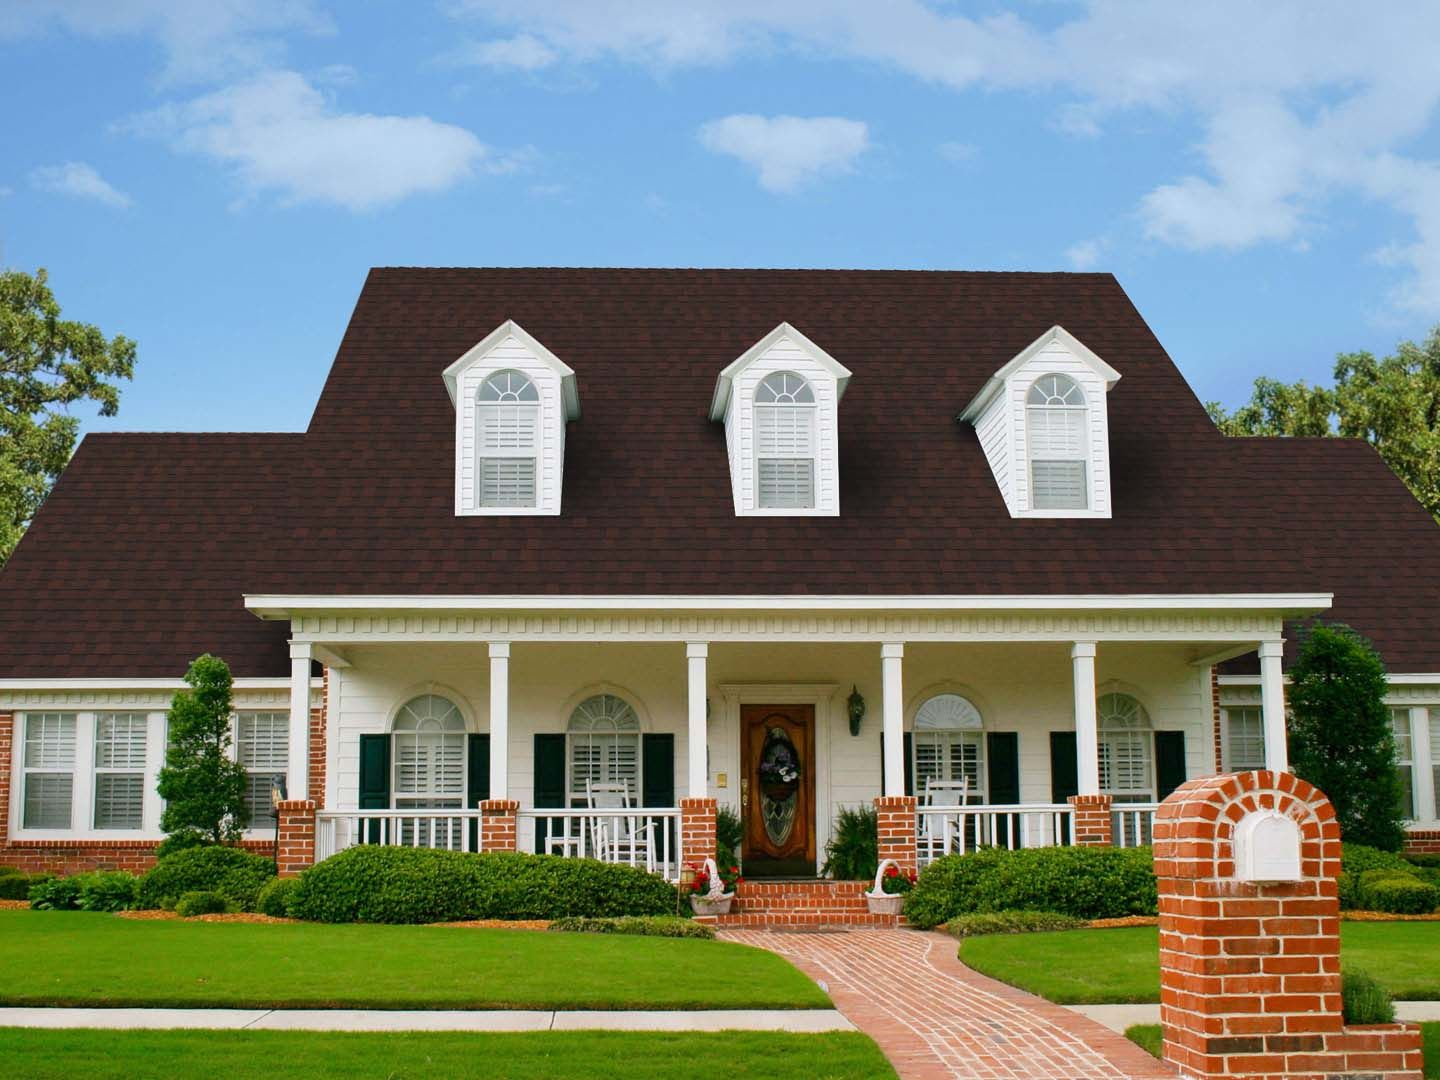 cape House Cheap roofing, Architectural shingles, Shingling